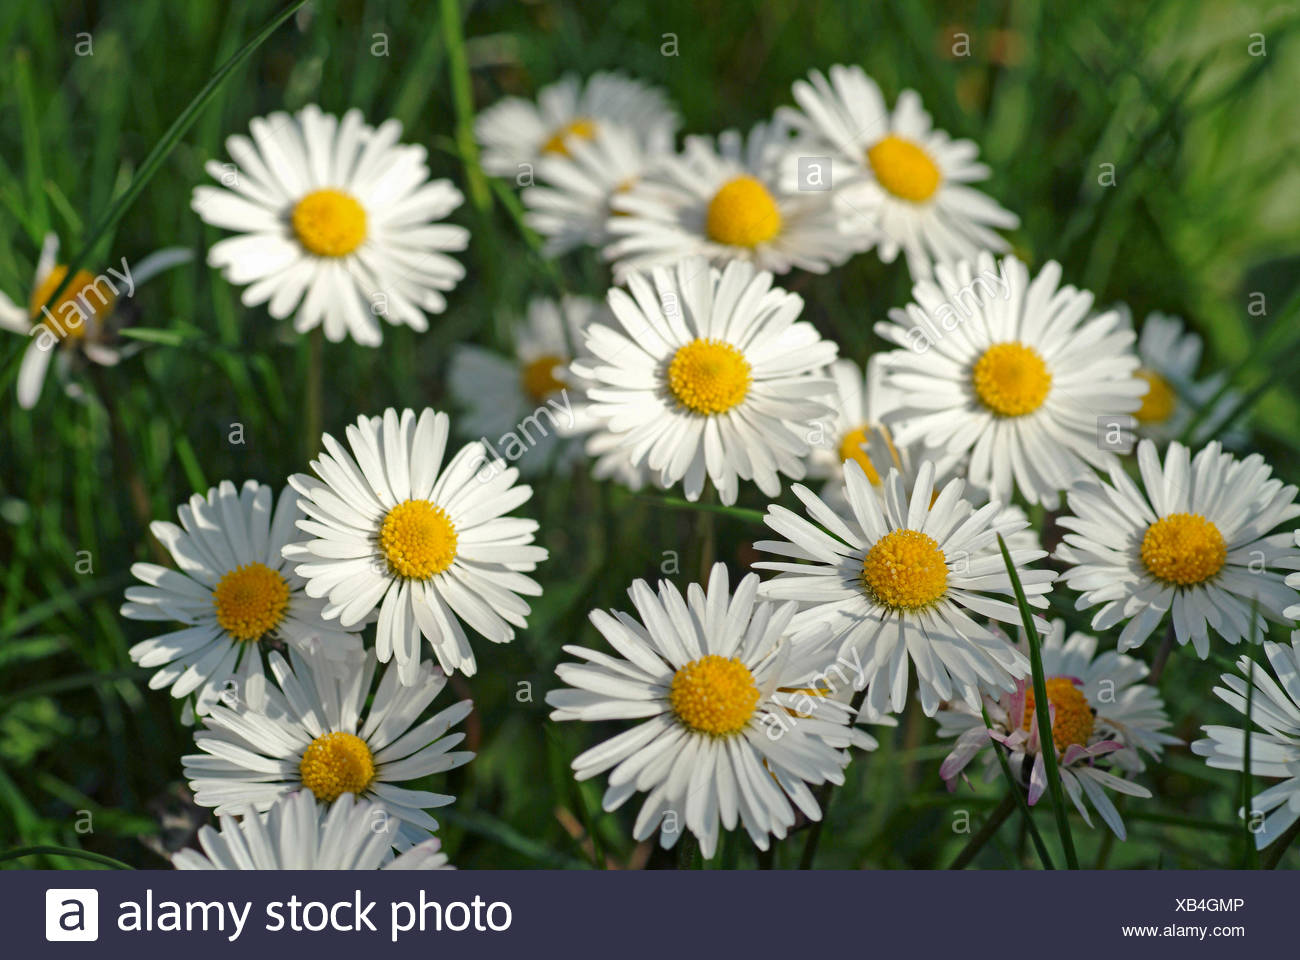 common daisy, lawn daisy, English daisy (Bellis perennis), blooming, Germany - Stock Image